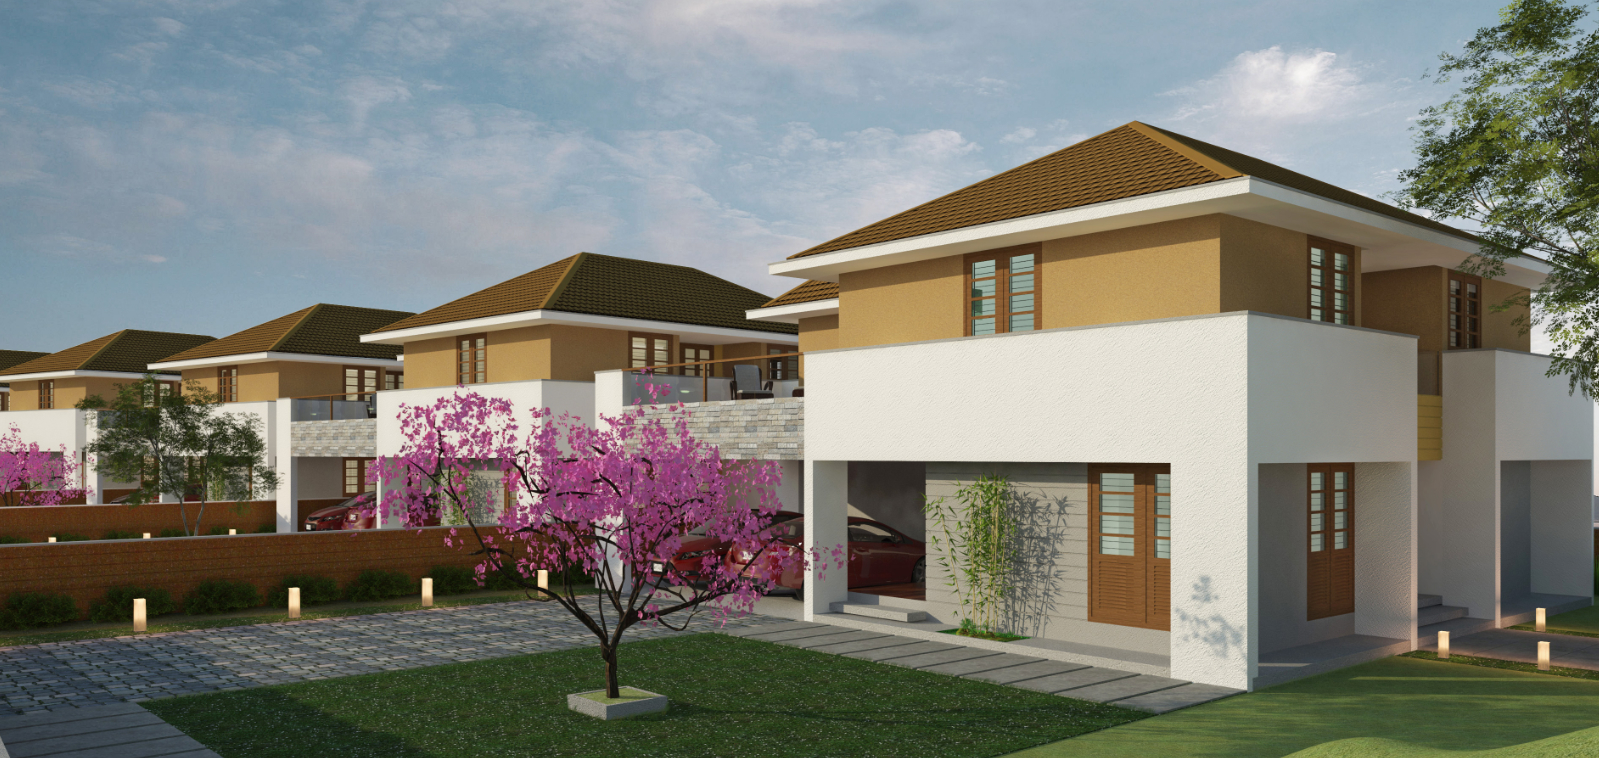 Pebble Garden - Luxury Villas In Kannur